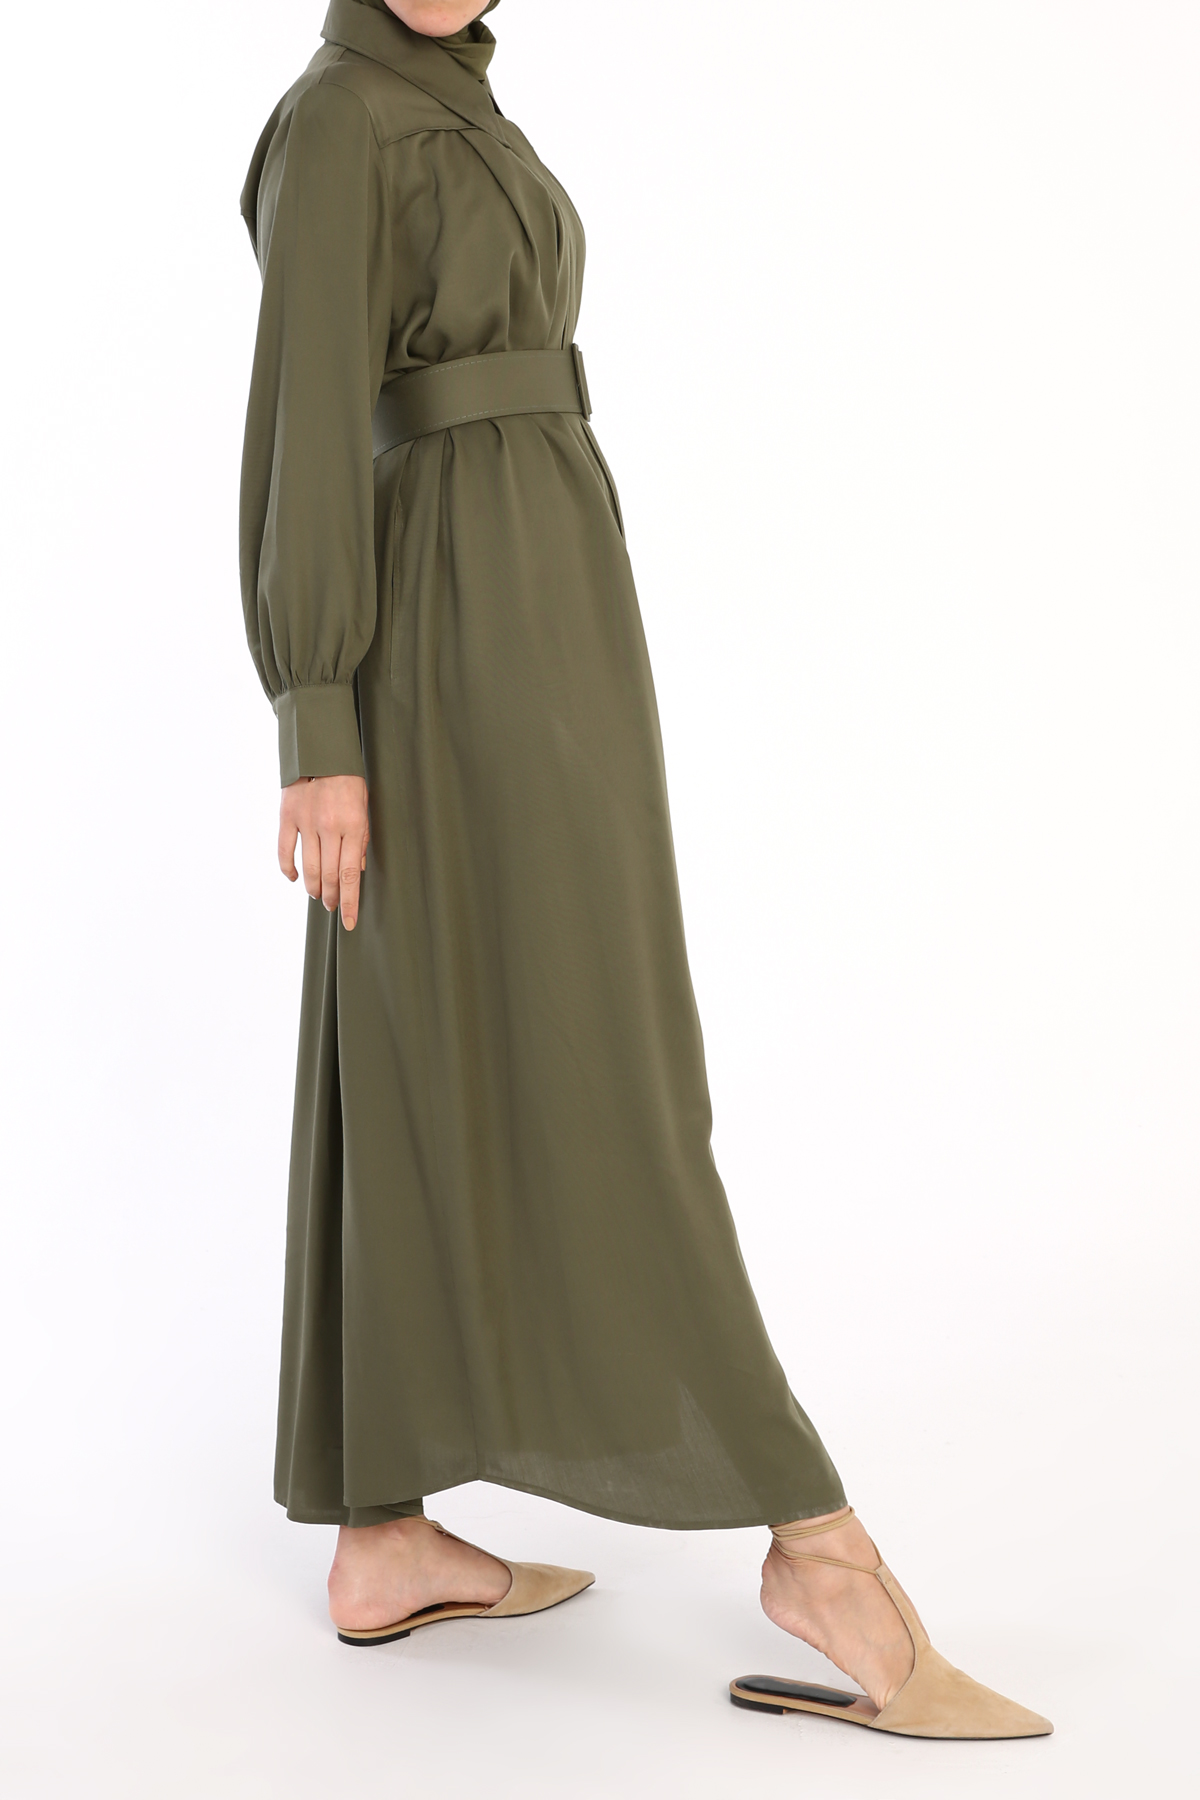 Button Front Pleated Comfy Viscose Abaya